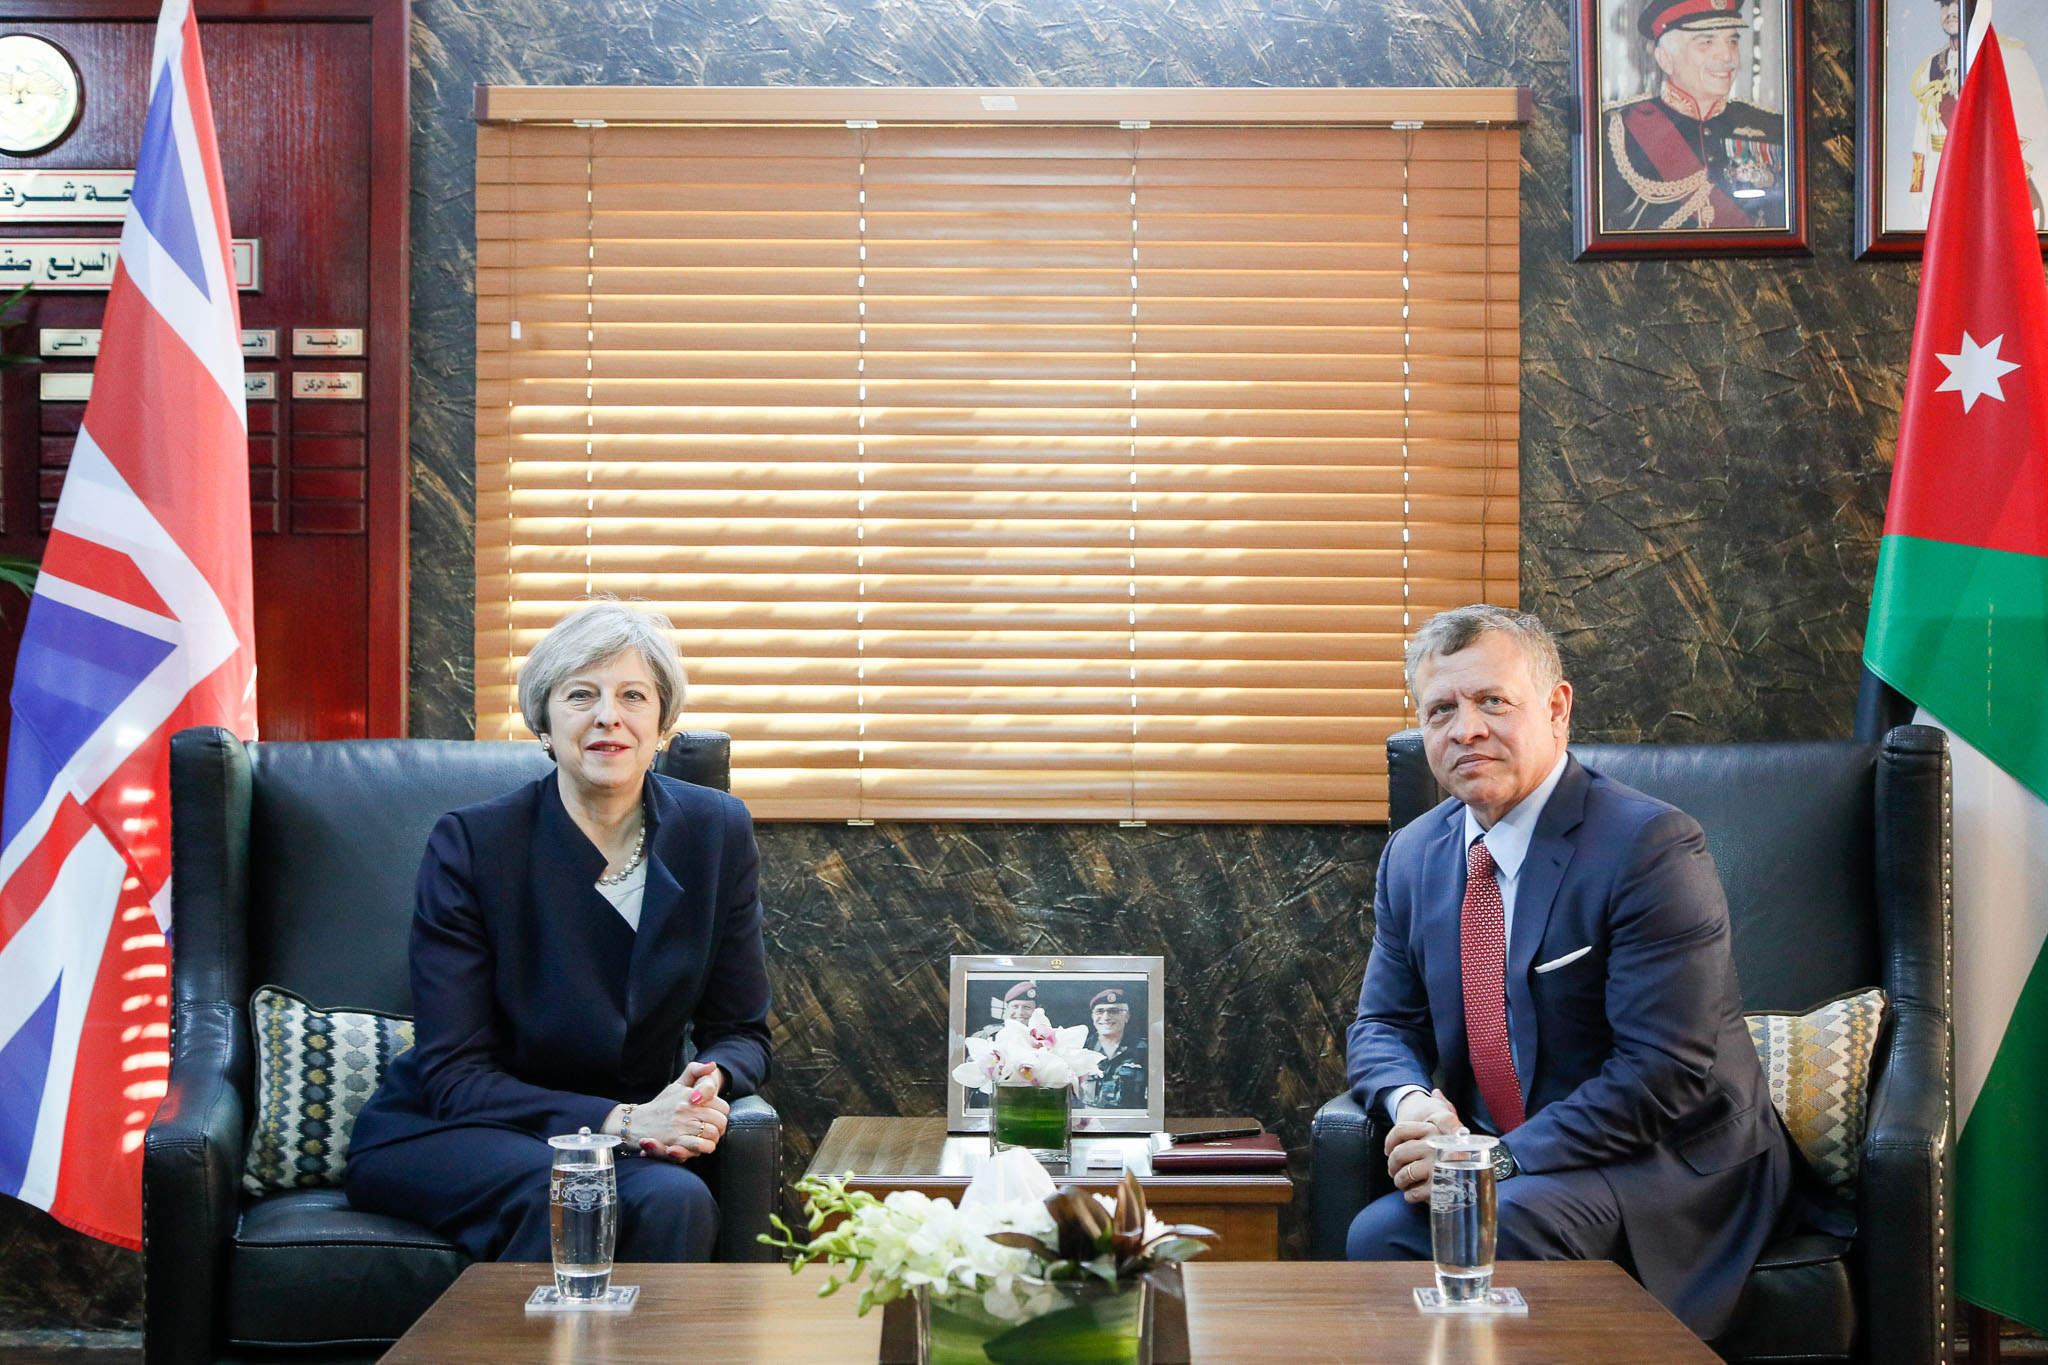 Theresa May's foreign policy: trade first, human rights never